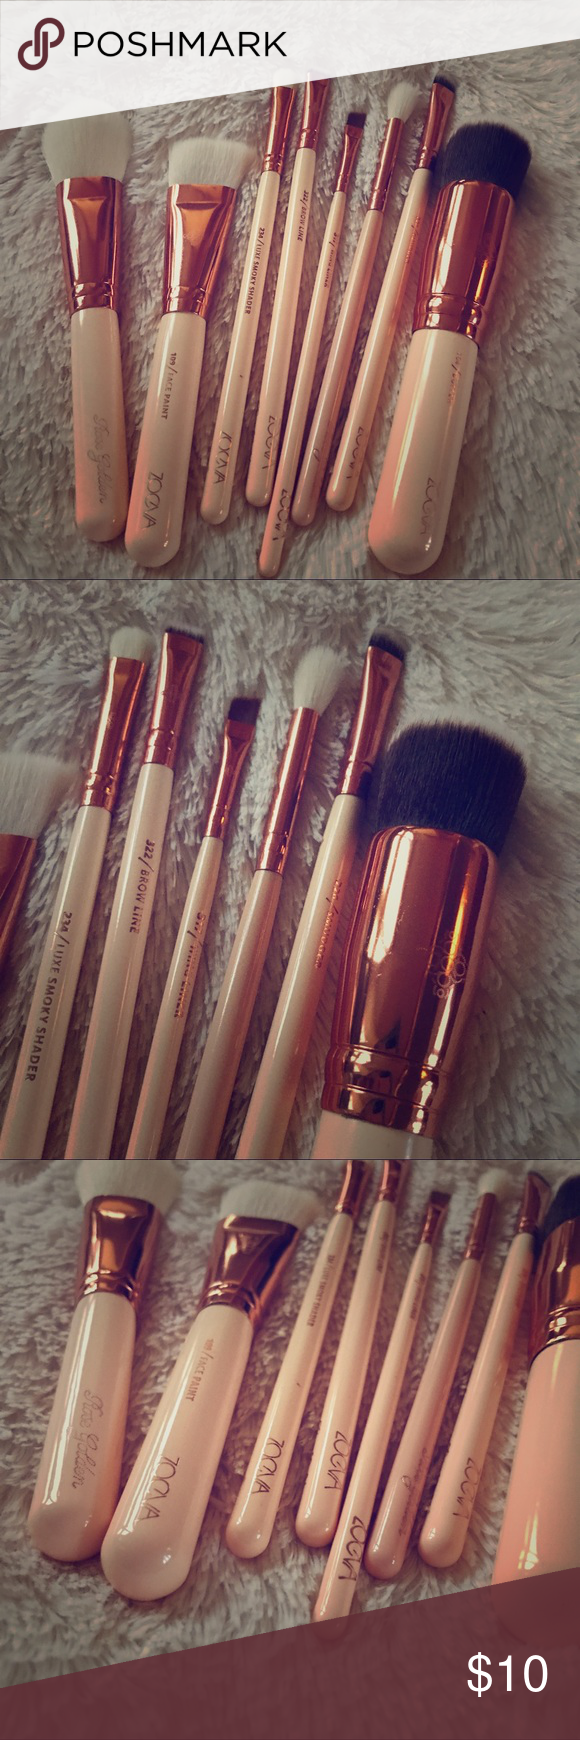 Zoeva Brush Set Includes all of the brushes pictured. They